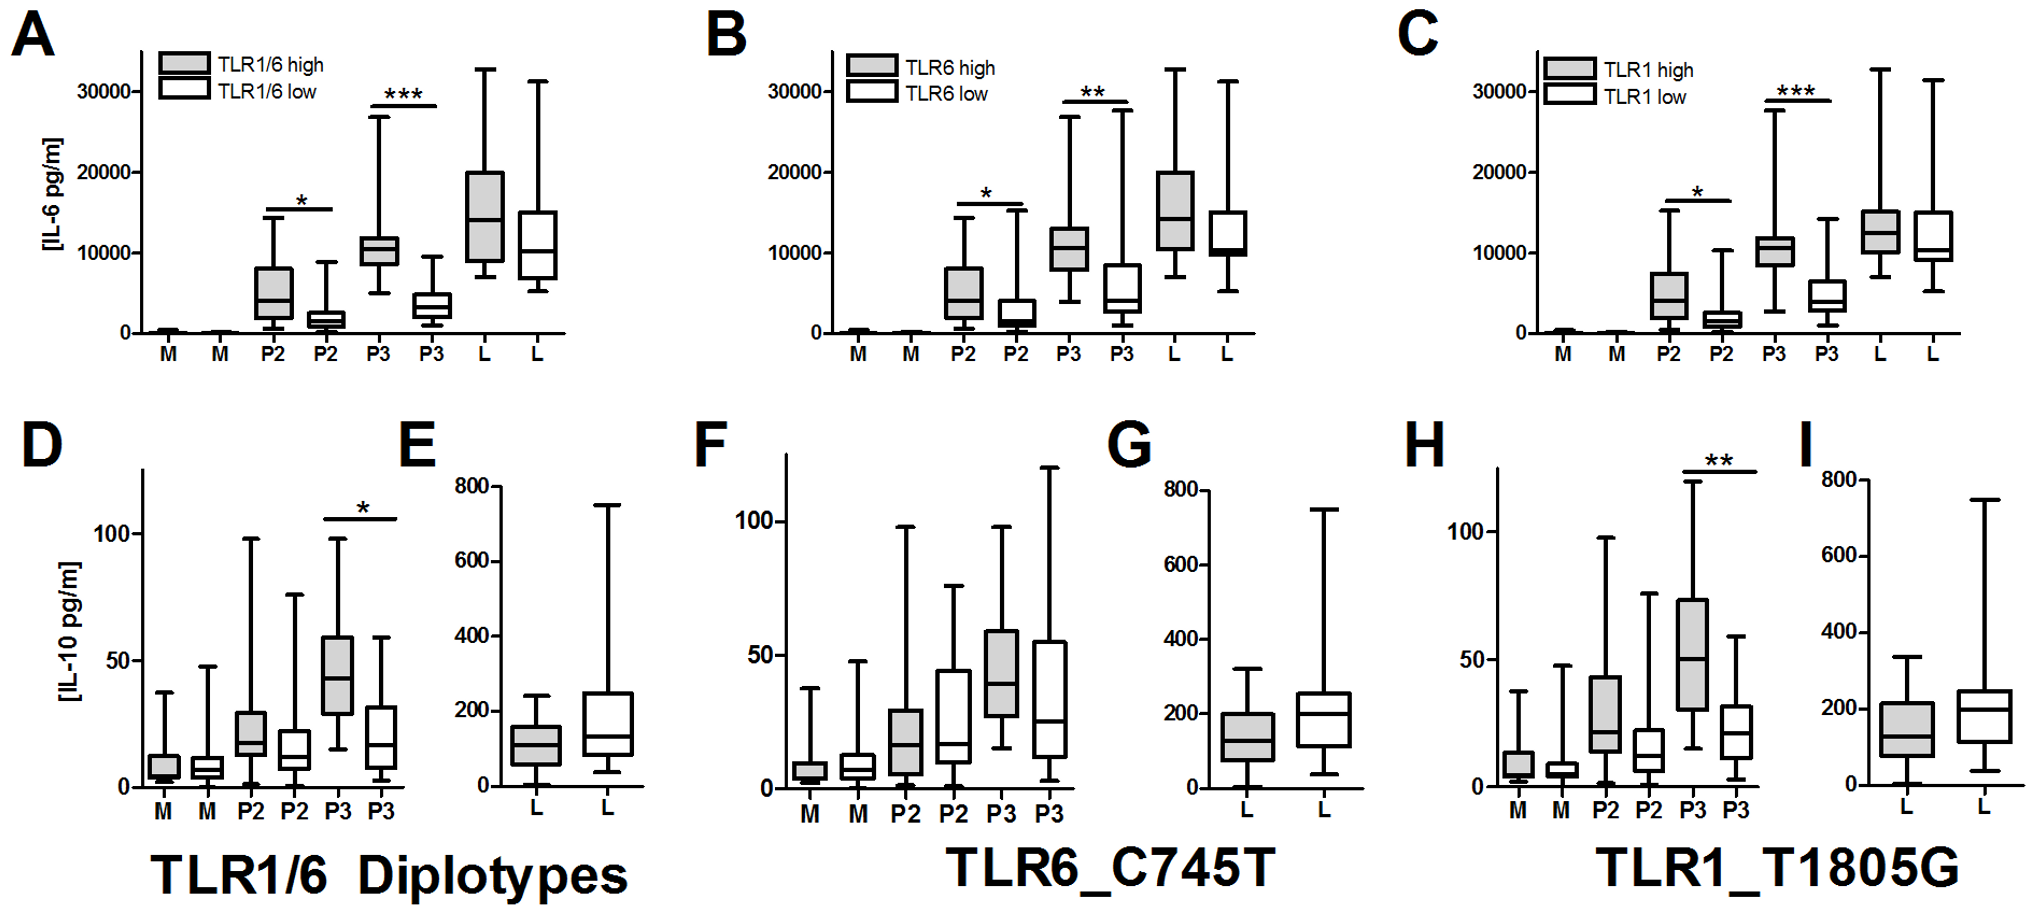 TLR1/6 polymorphisms are associated with decreased lipopeptide-induced IL-6 and IL-10 production in PBMCs.